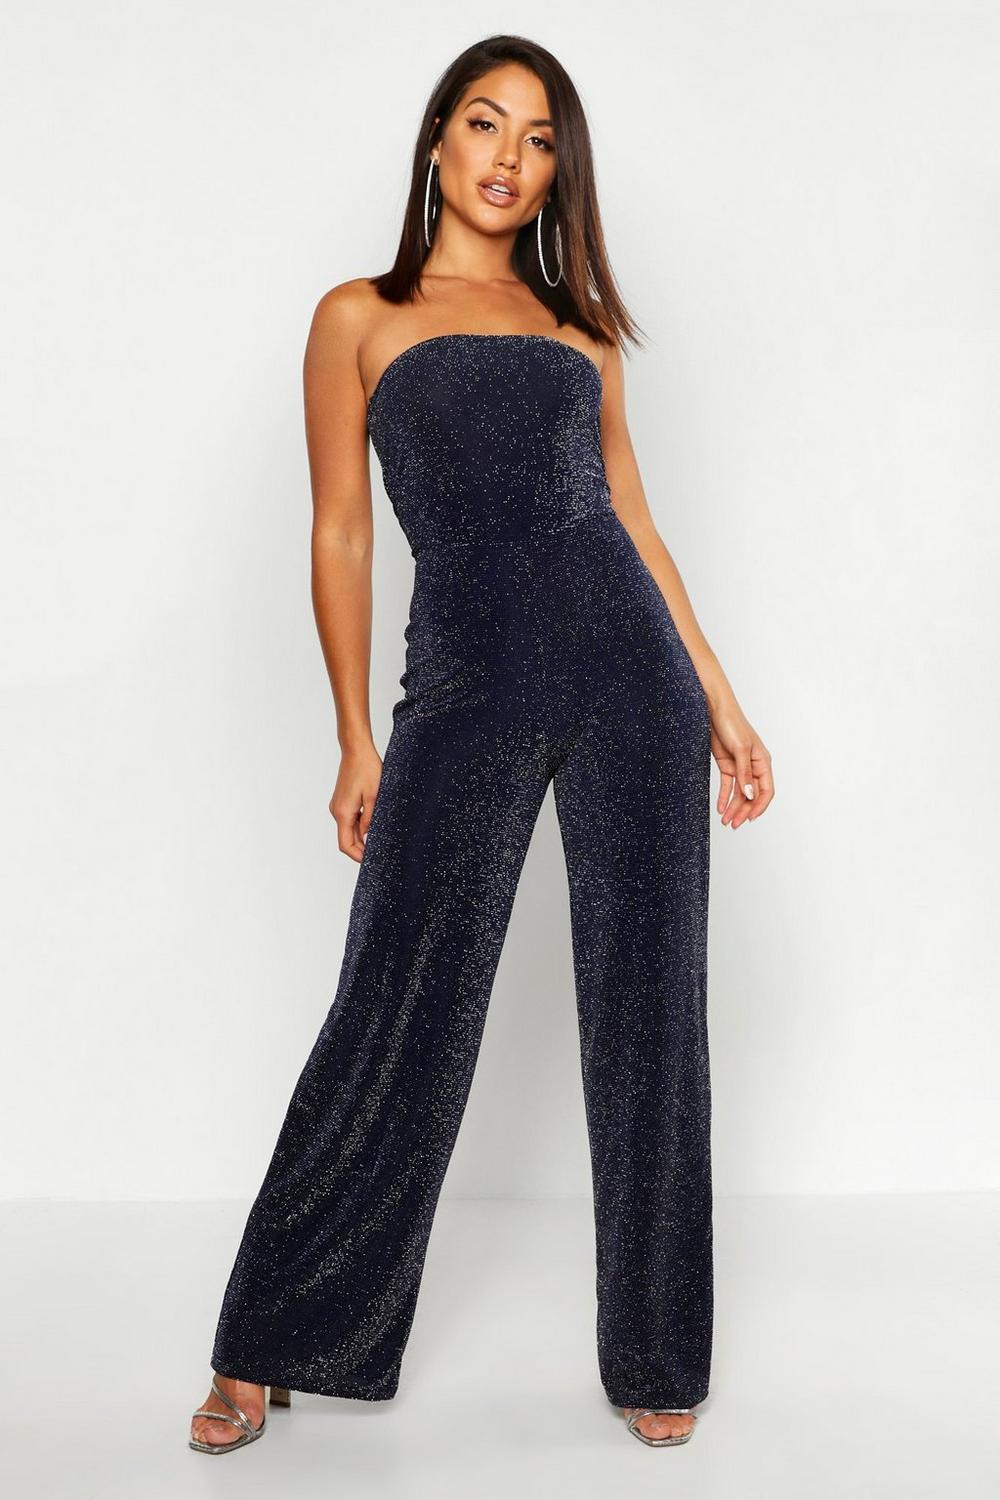 81b0fc9ad8a Strapless Wide Leg Sparkle Jumpsuit. Hover to zoom